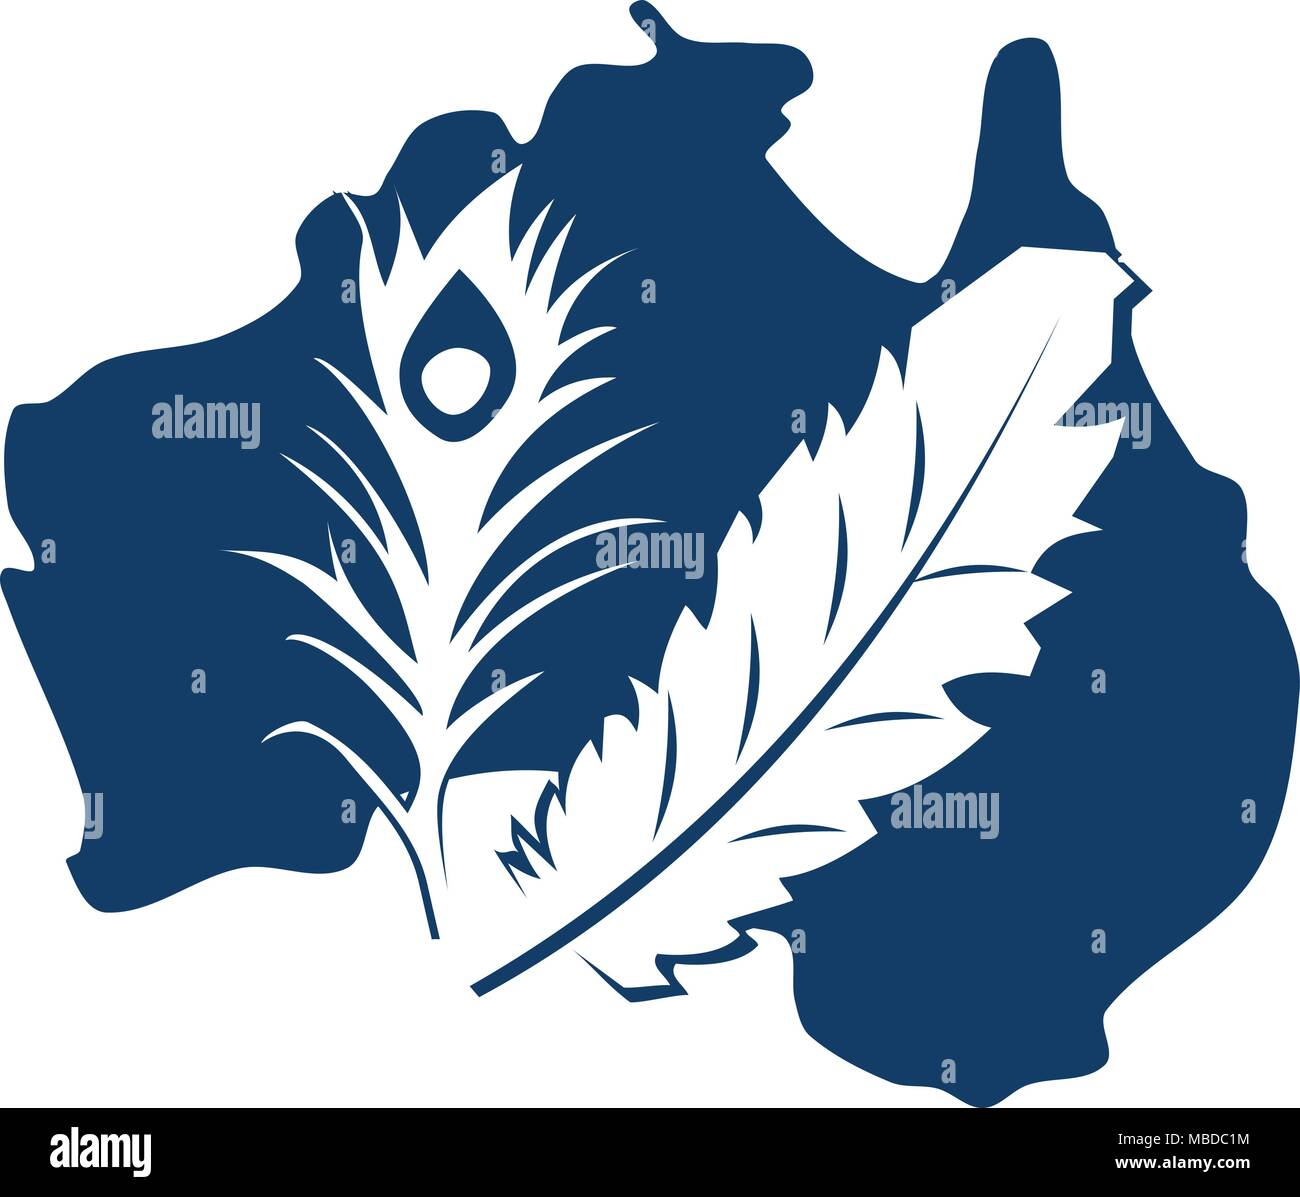 Australian Dusted Feather Super Store - Stock Vector